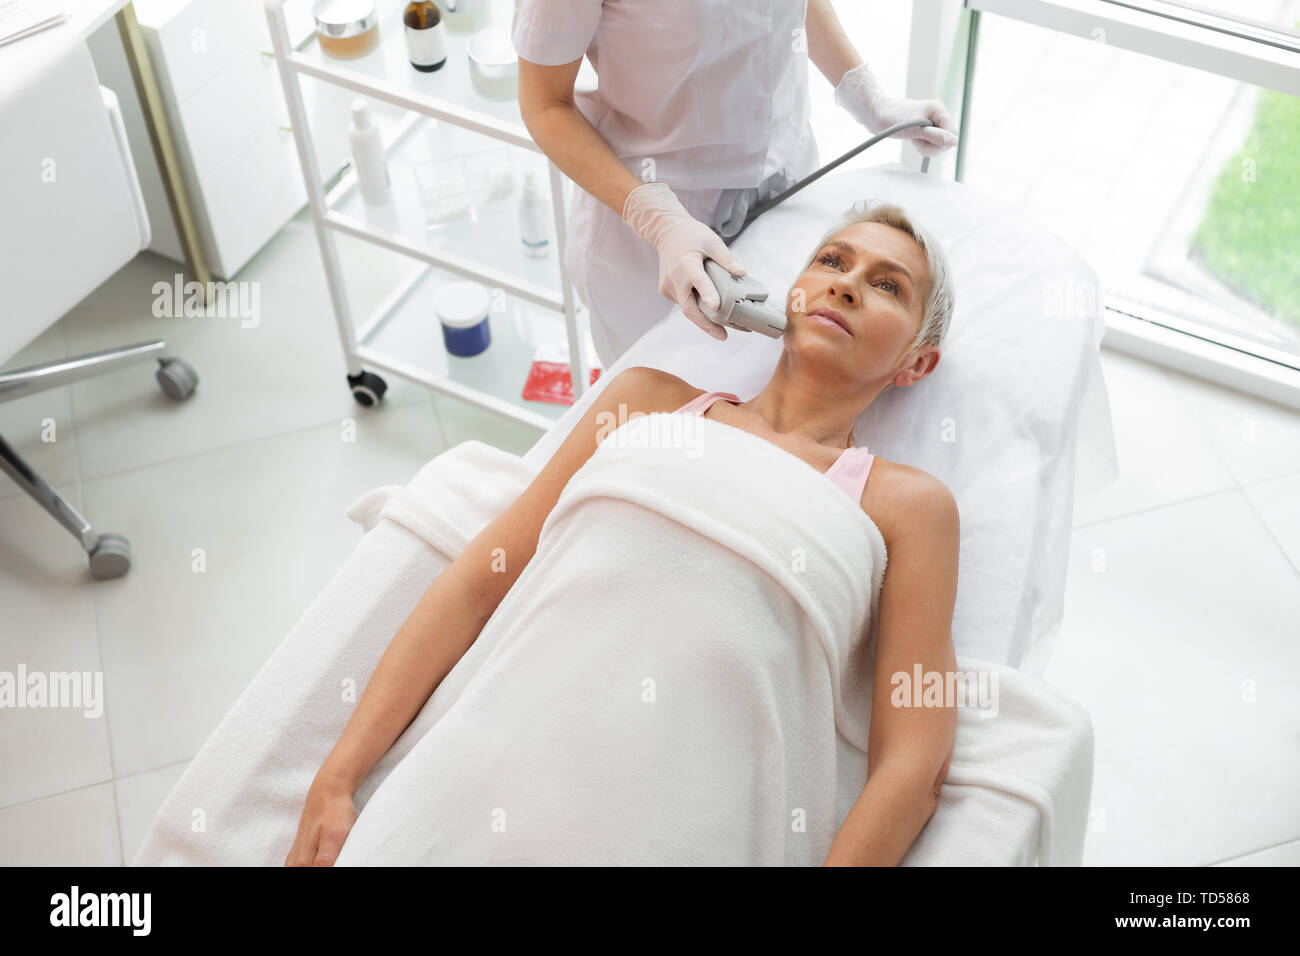 Latest methodology. Serious mature woman receiving a dermadrop TDA procedure while visiting a cosmetologist - Stock Image